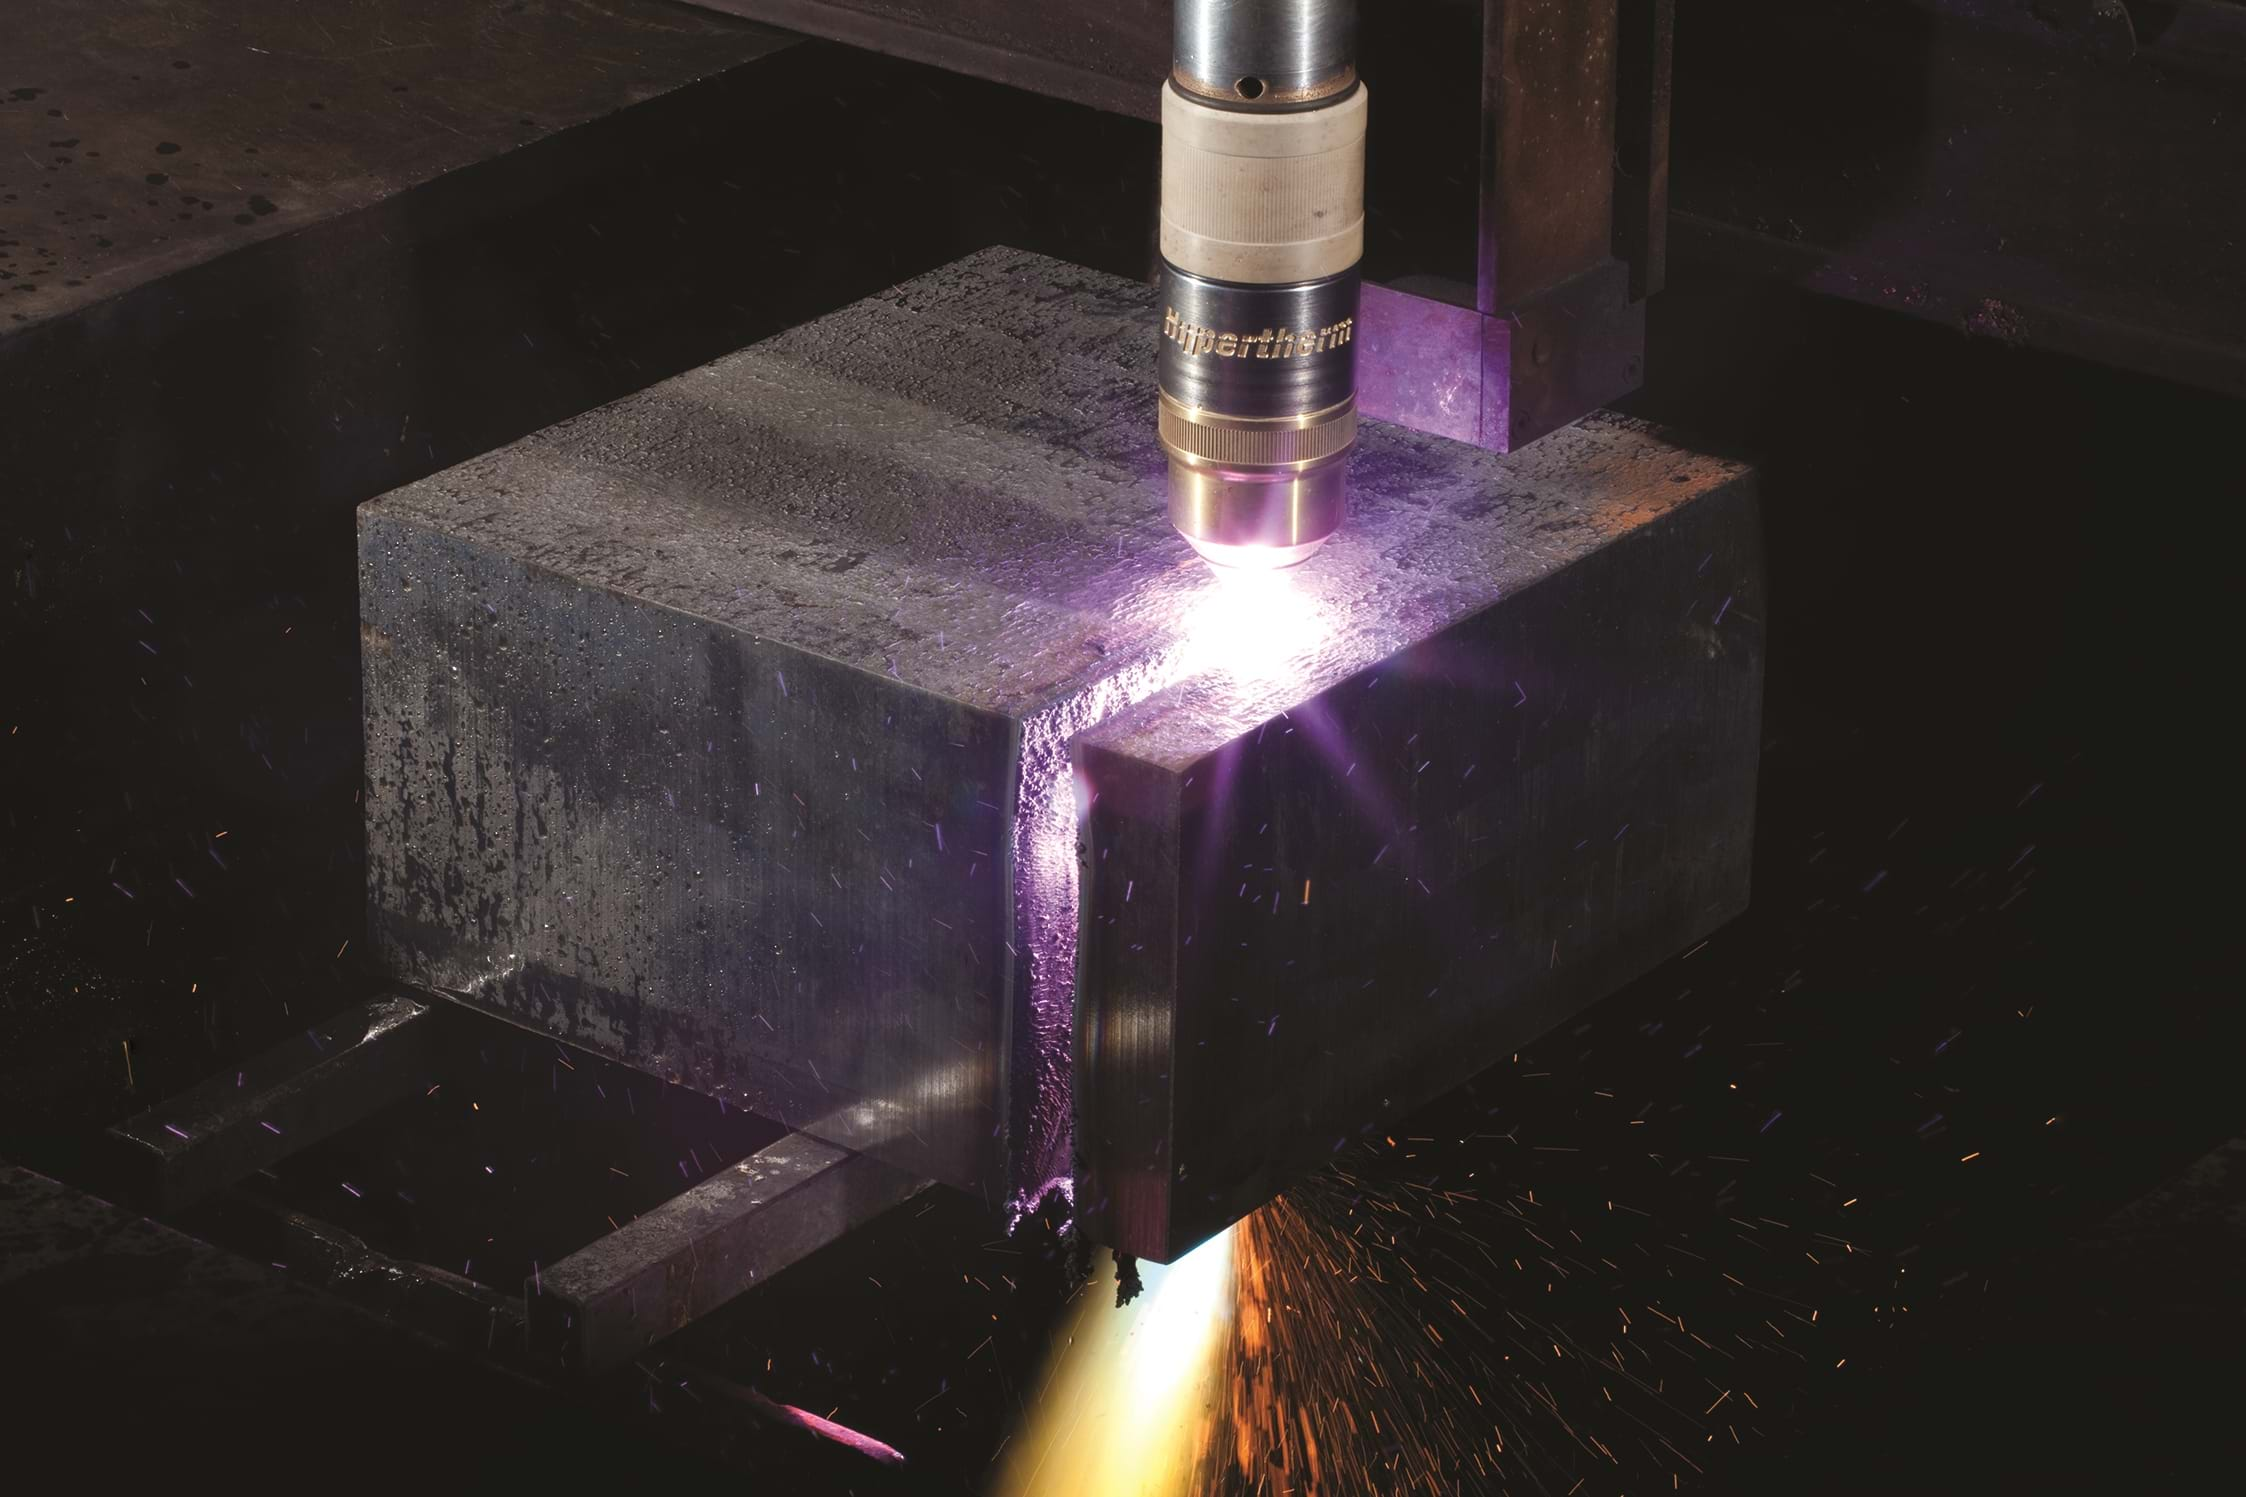 HPR800XD cutting 6 inch mild steel